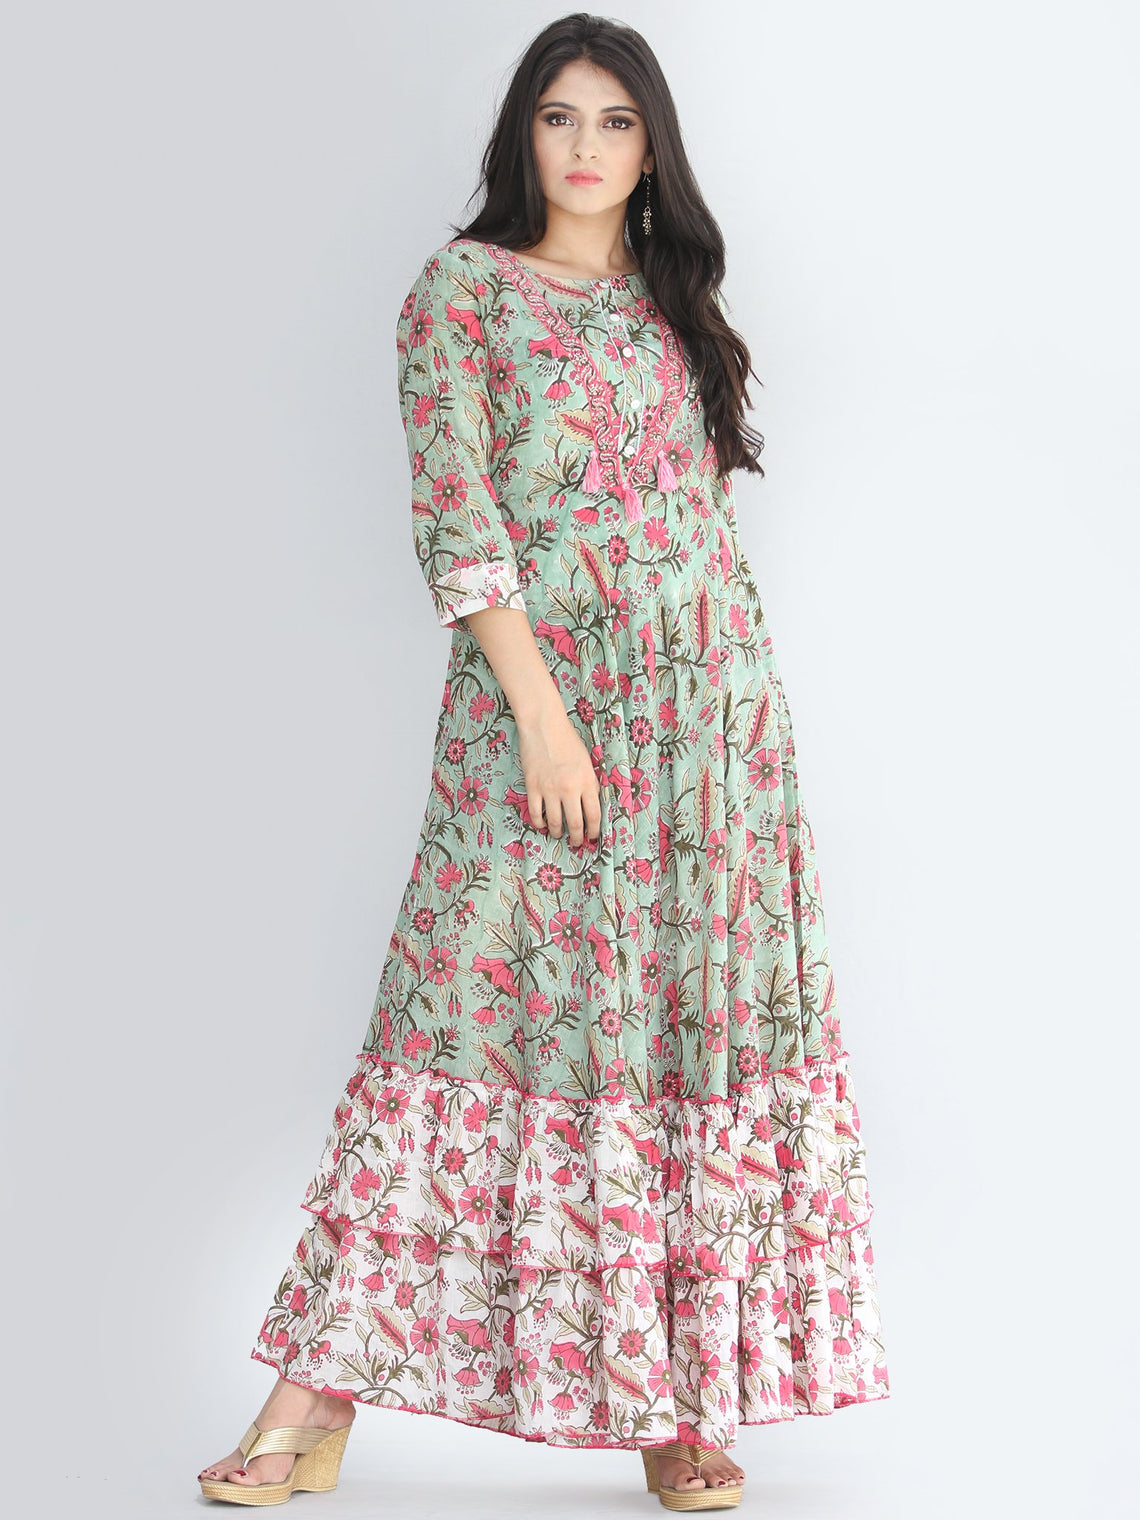 Fariba - Hand Block Printed Long Cotton Dress With Ruffles - D412F2187